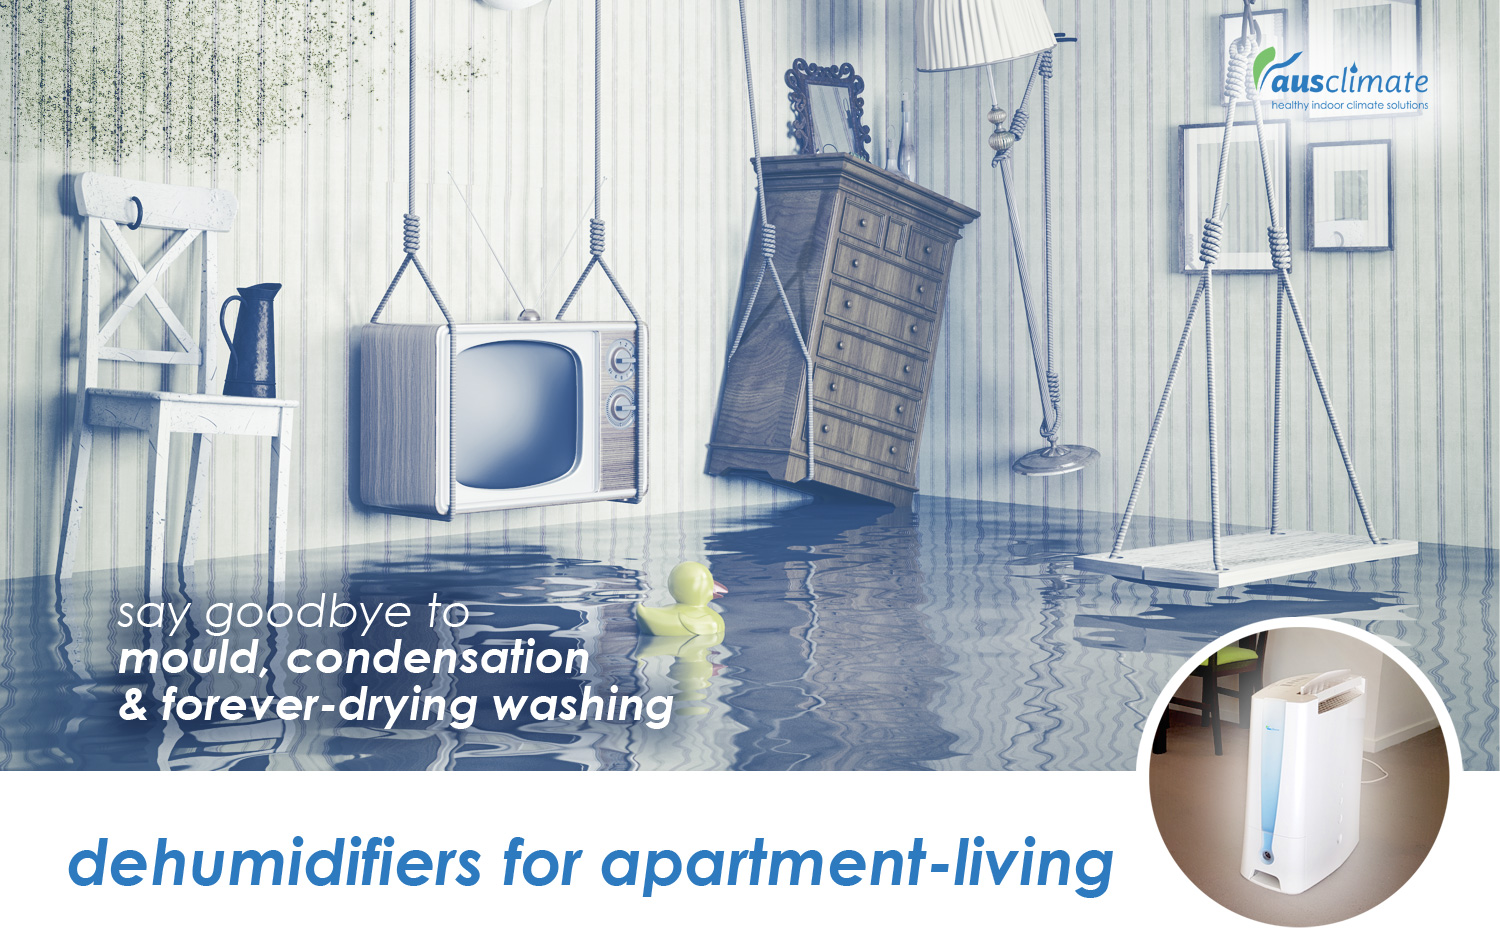 Dehumidifiers-For-Apartment-Living-(header)